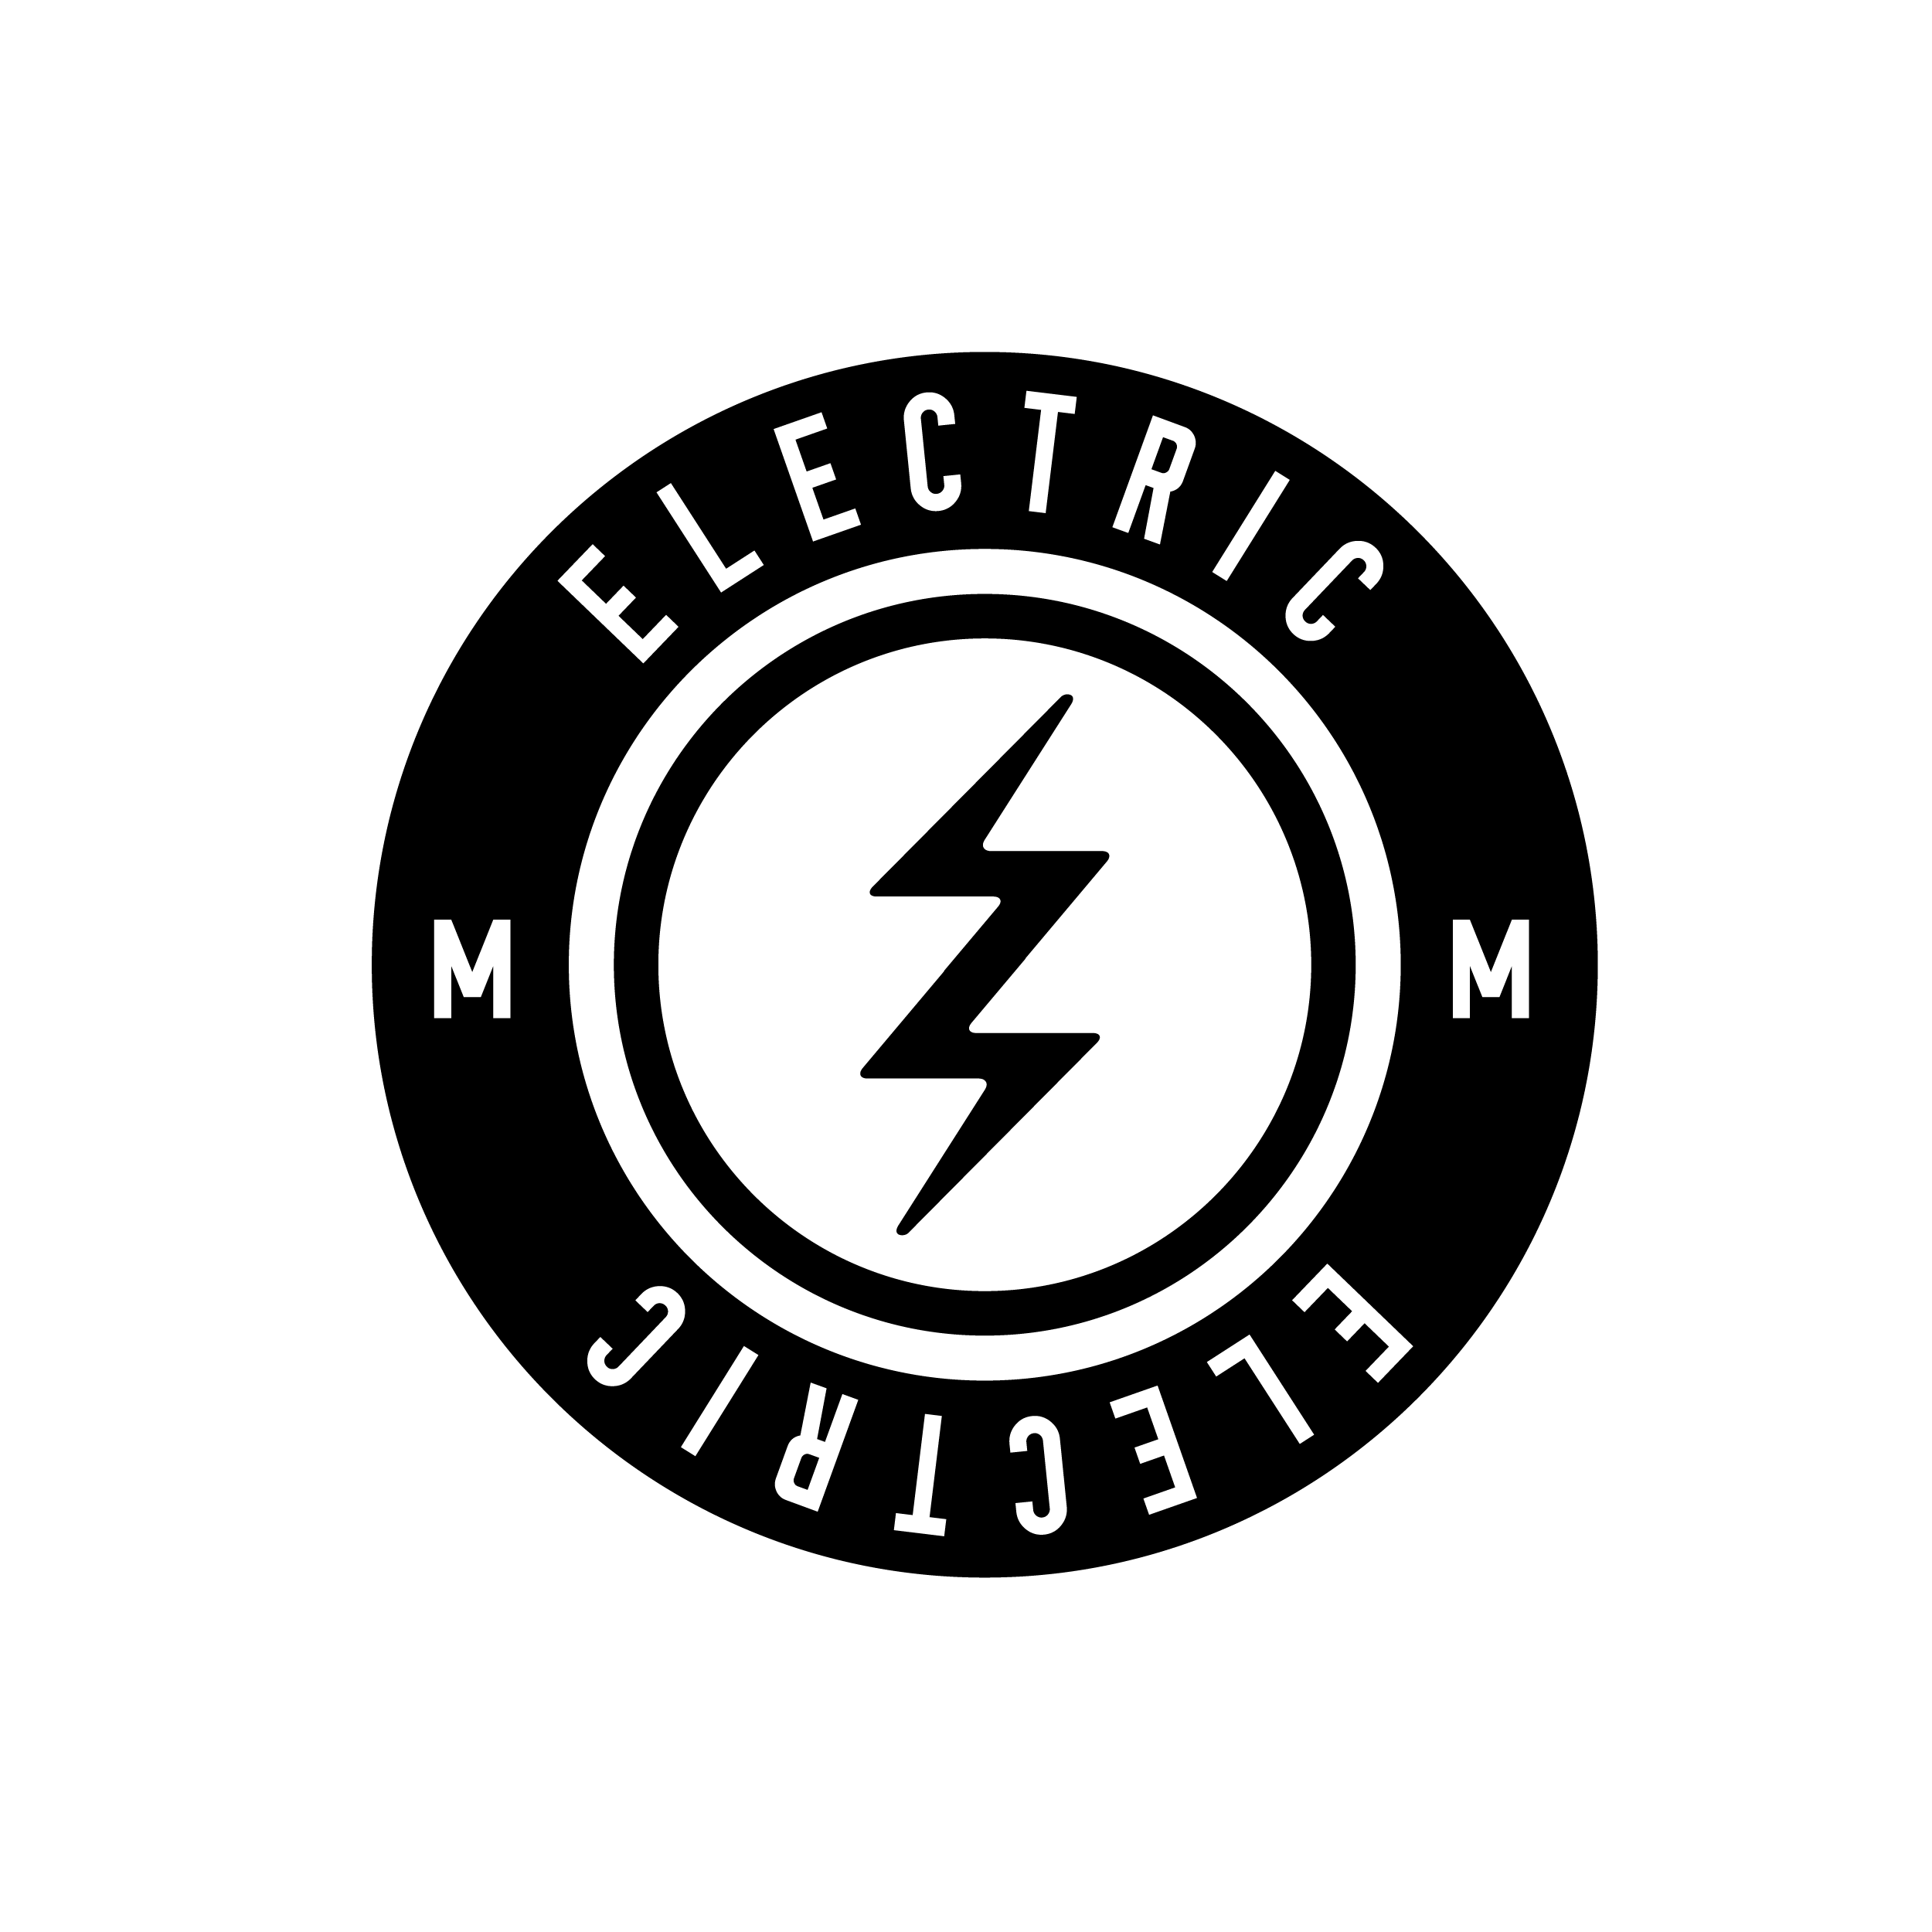 Electric-01.png